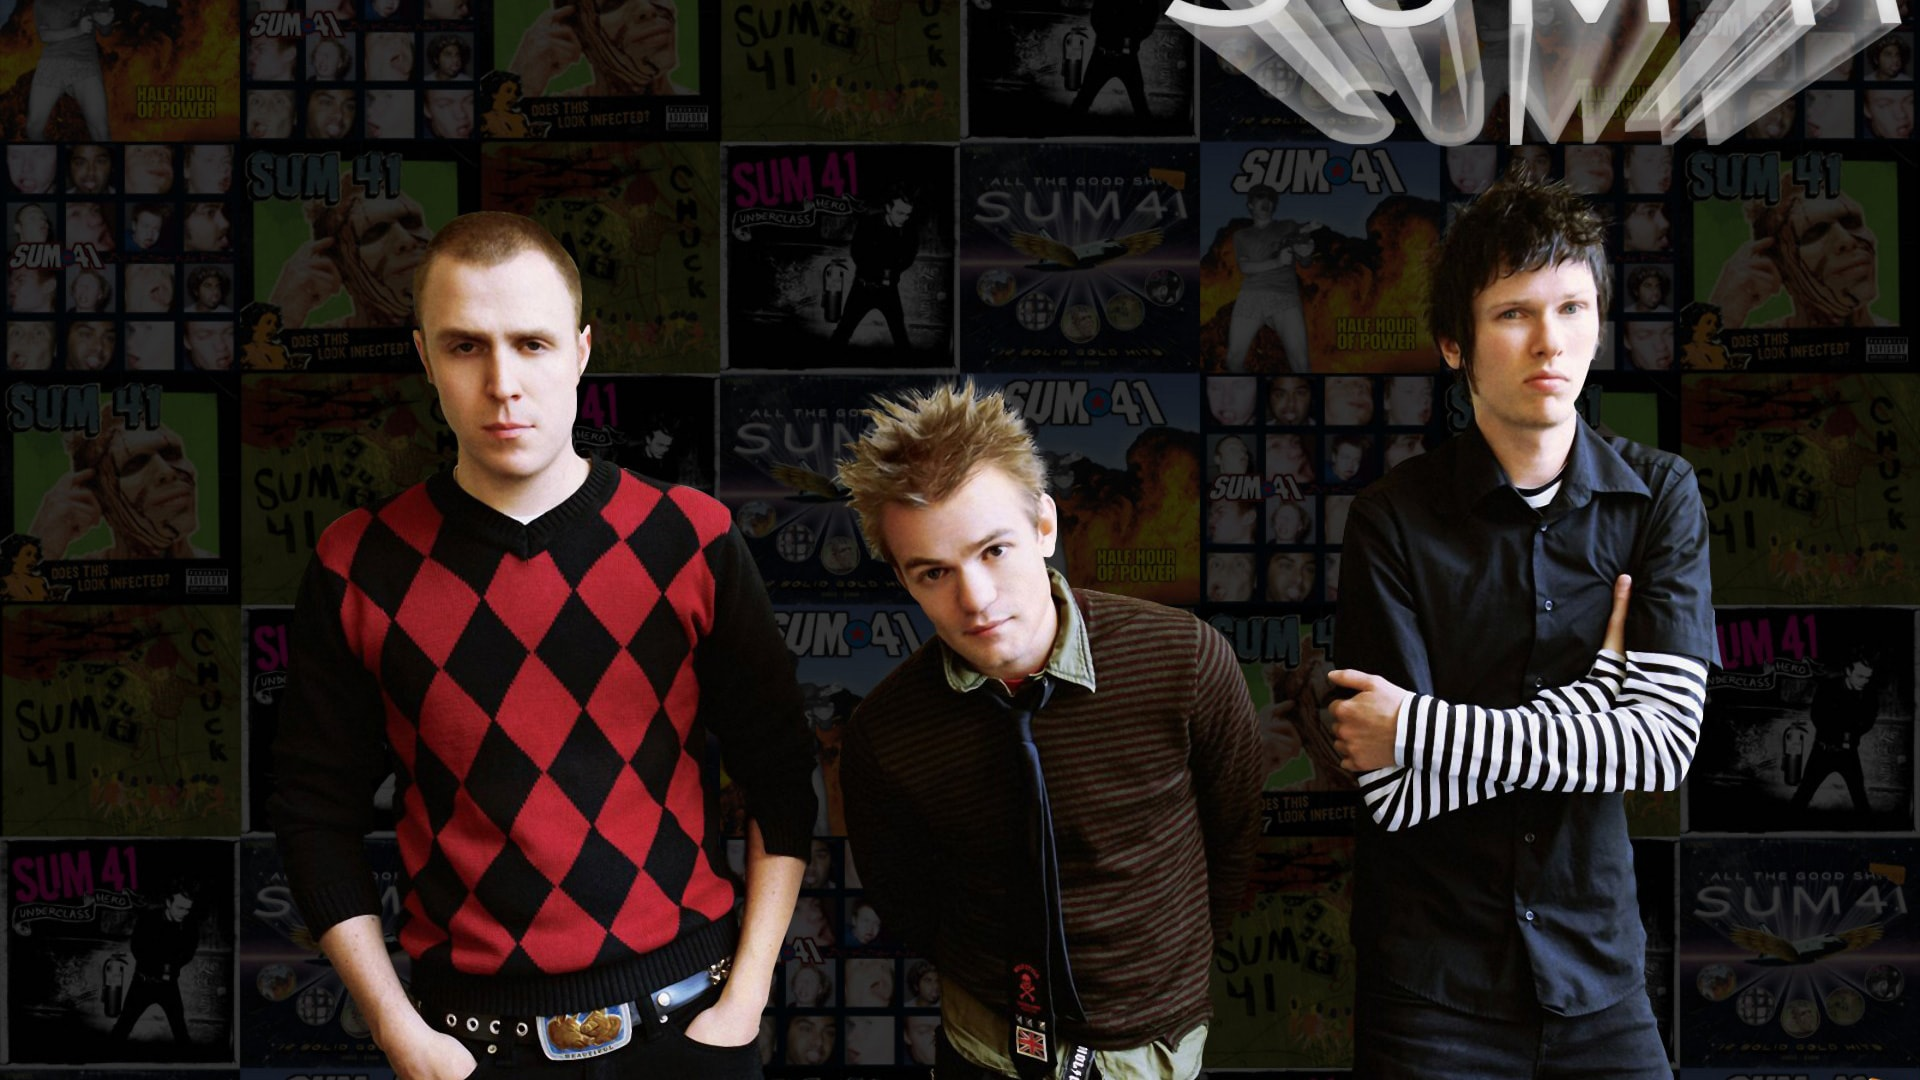 Sum 41 HQ wallpapers